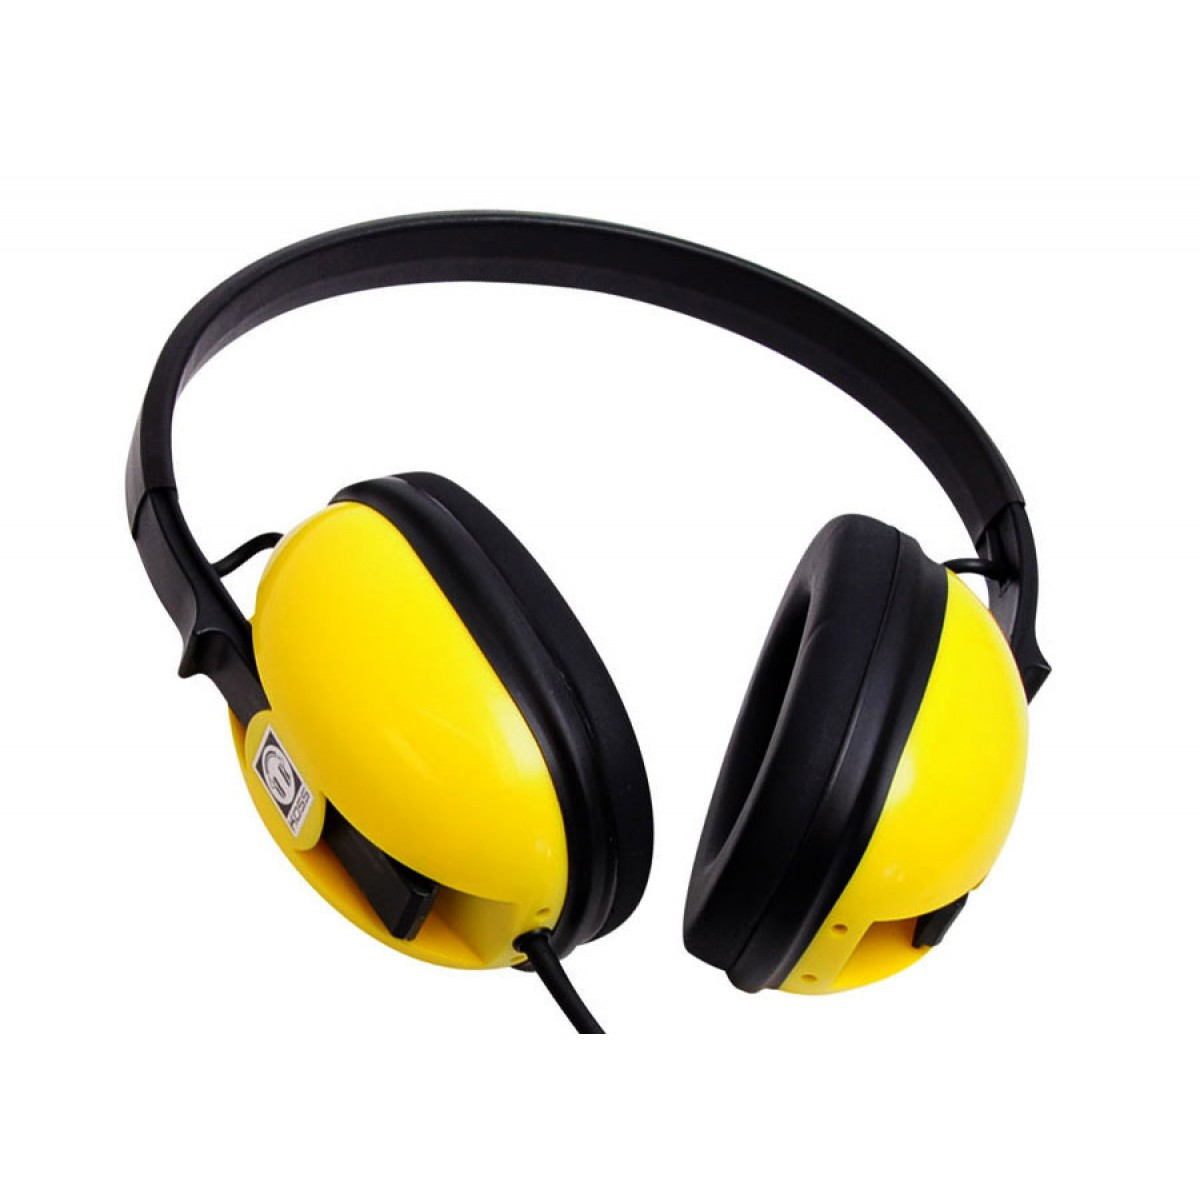 237 30110258_1f metal detecting headphones for sale kellyco  at gsmx.co